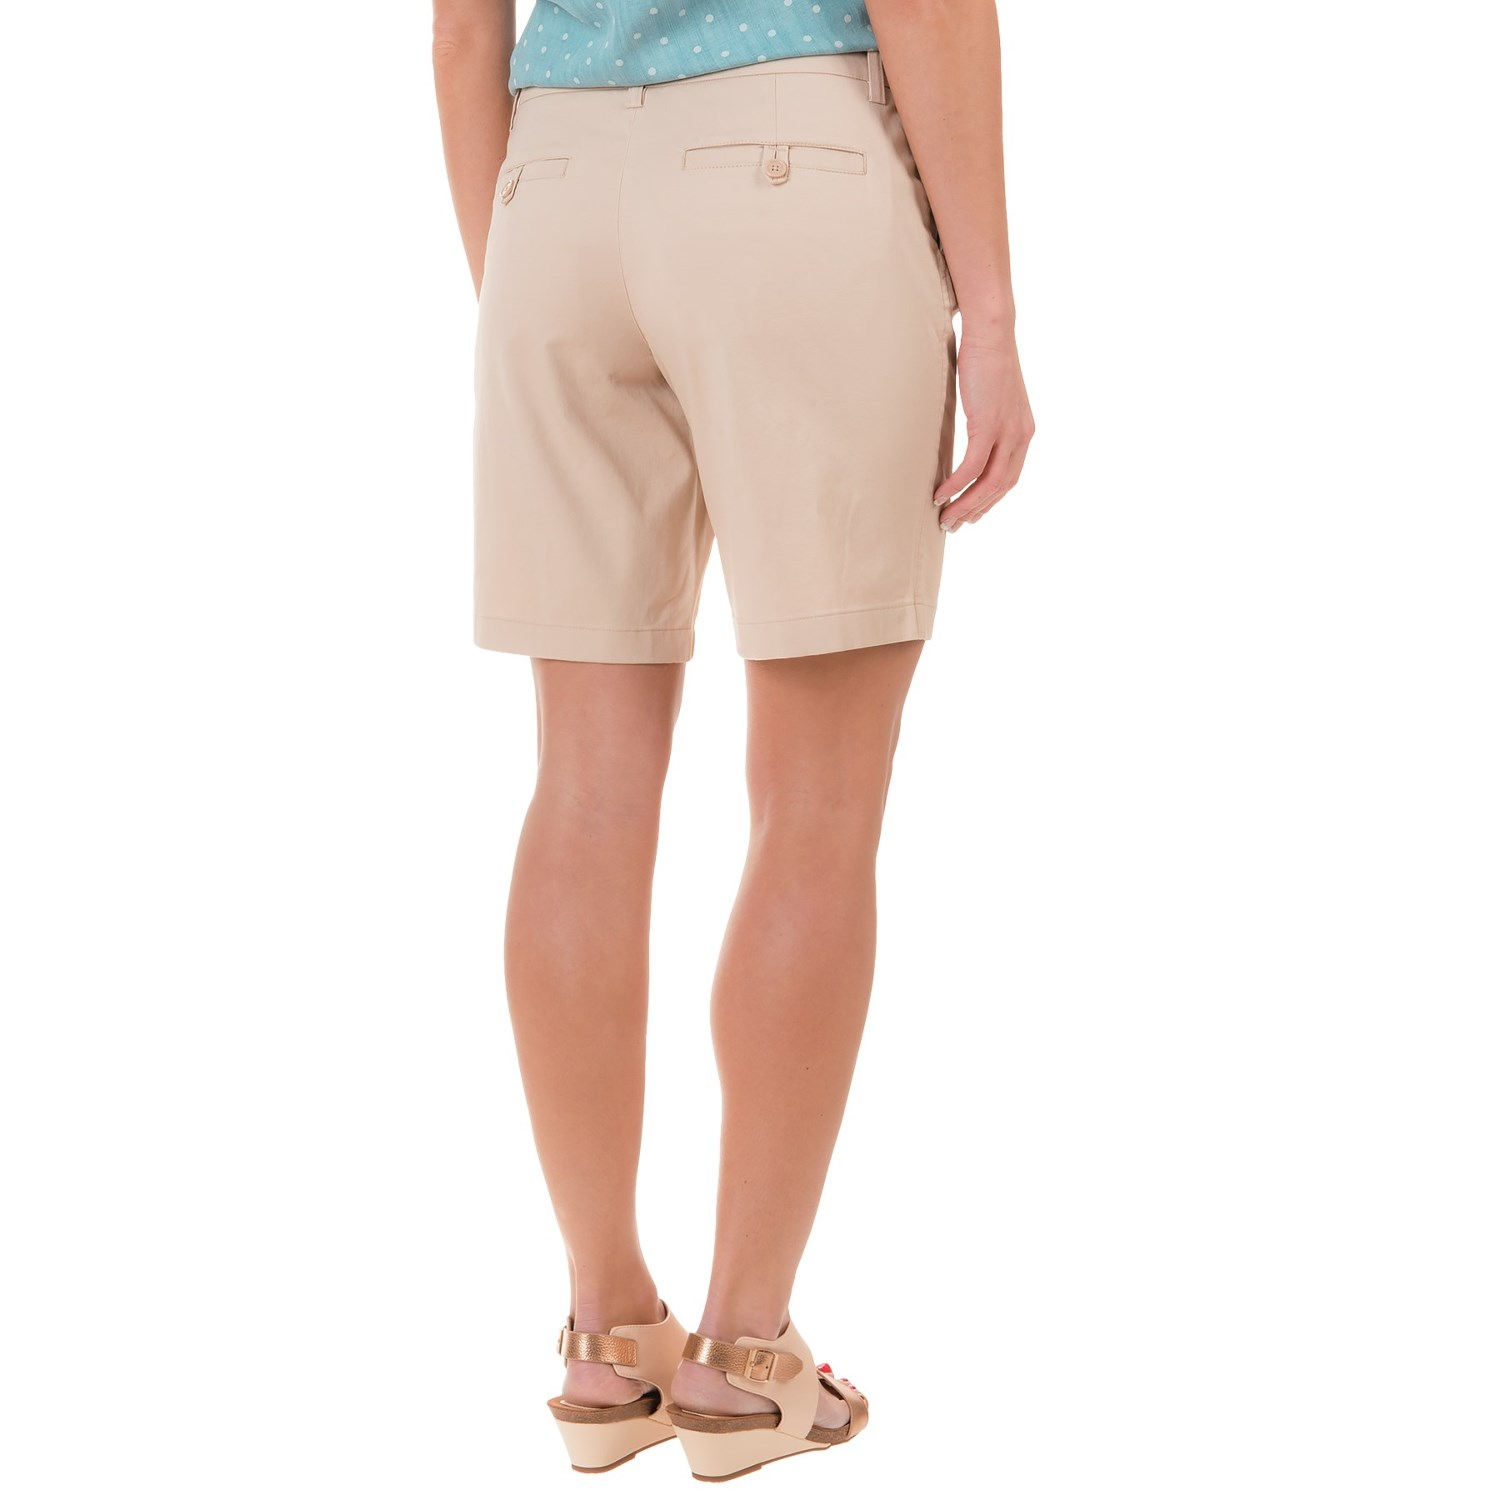 Shop for khaki bermuda shorts online at Target. Free shipping on purchases over $35 and save 5% every day with your Target REDcard.